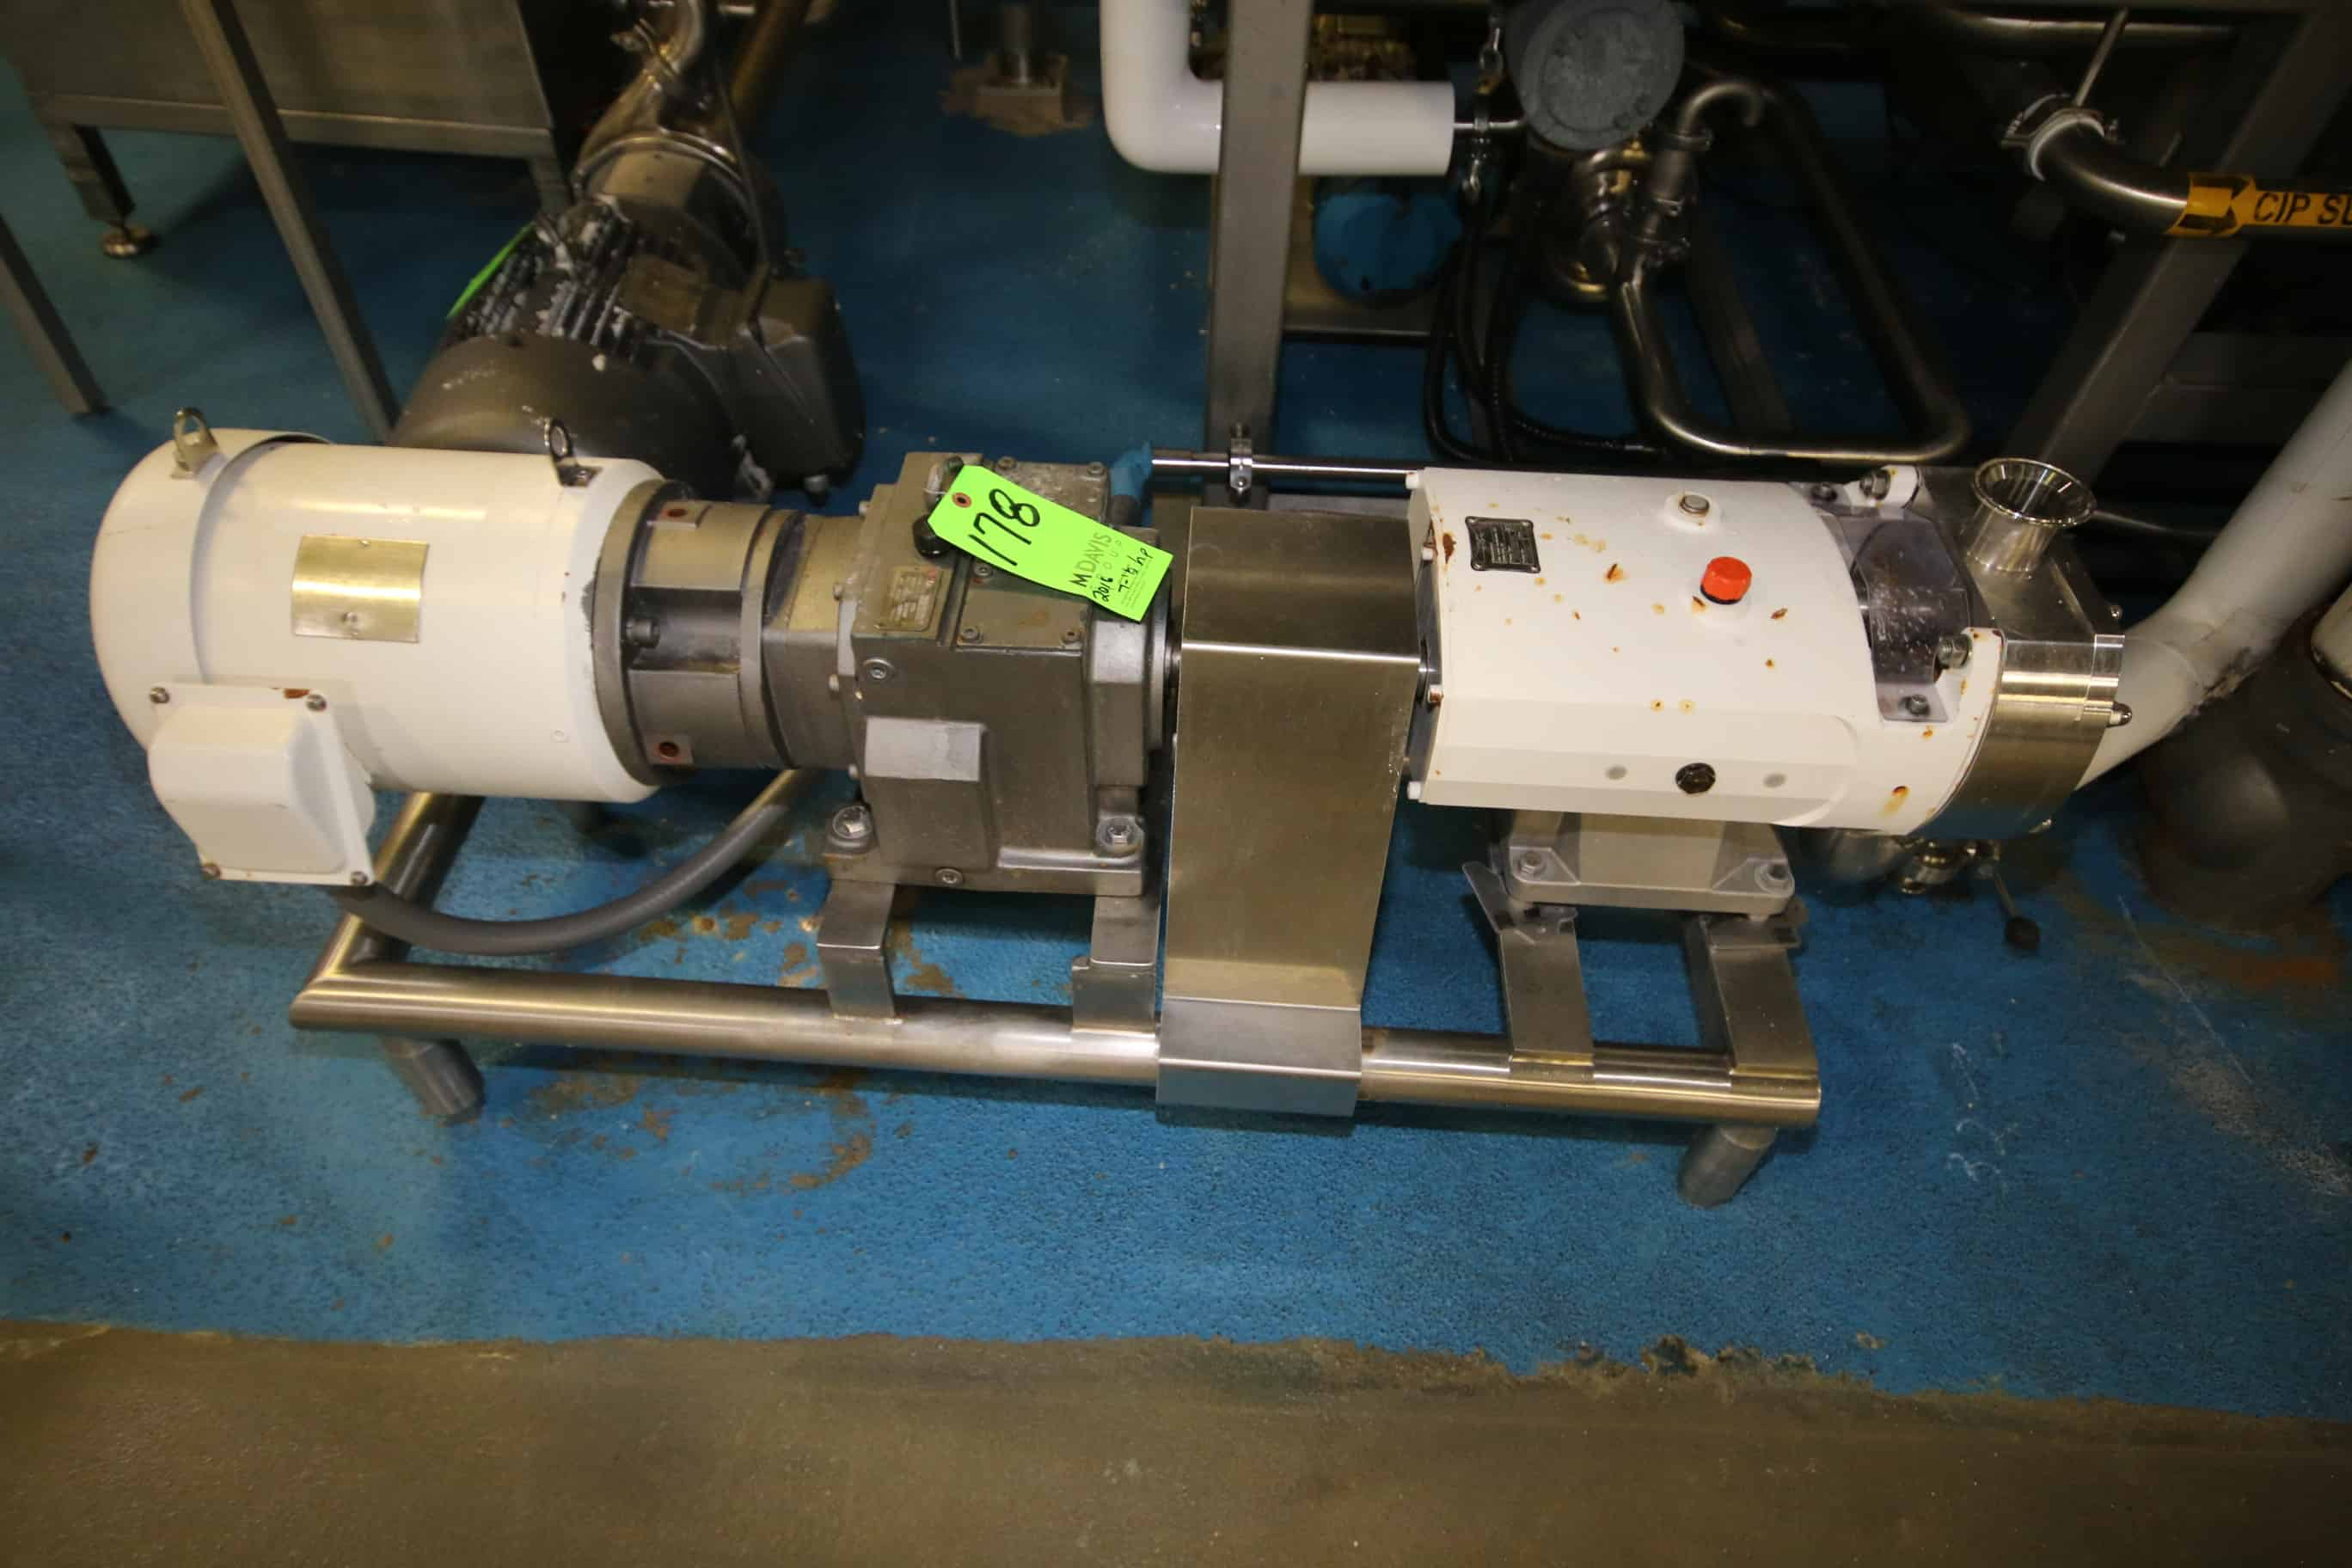 """2016 Alfa Laval 7.5 hp Positive Displacement Pump, Type SRU4/SS/HS, S/N 147160 with 2"""" S/S Clamp Type Head and Sterling 1770 RPM Motor, 208-230/460 V, 3 Phase, Mounted on S/S Stand"""